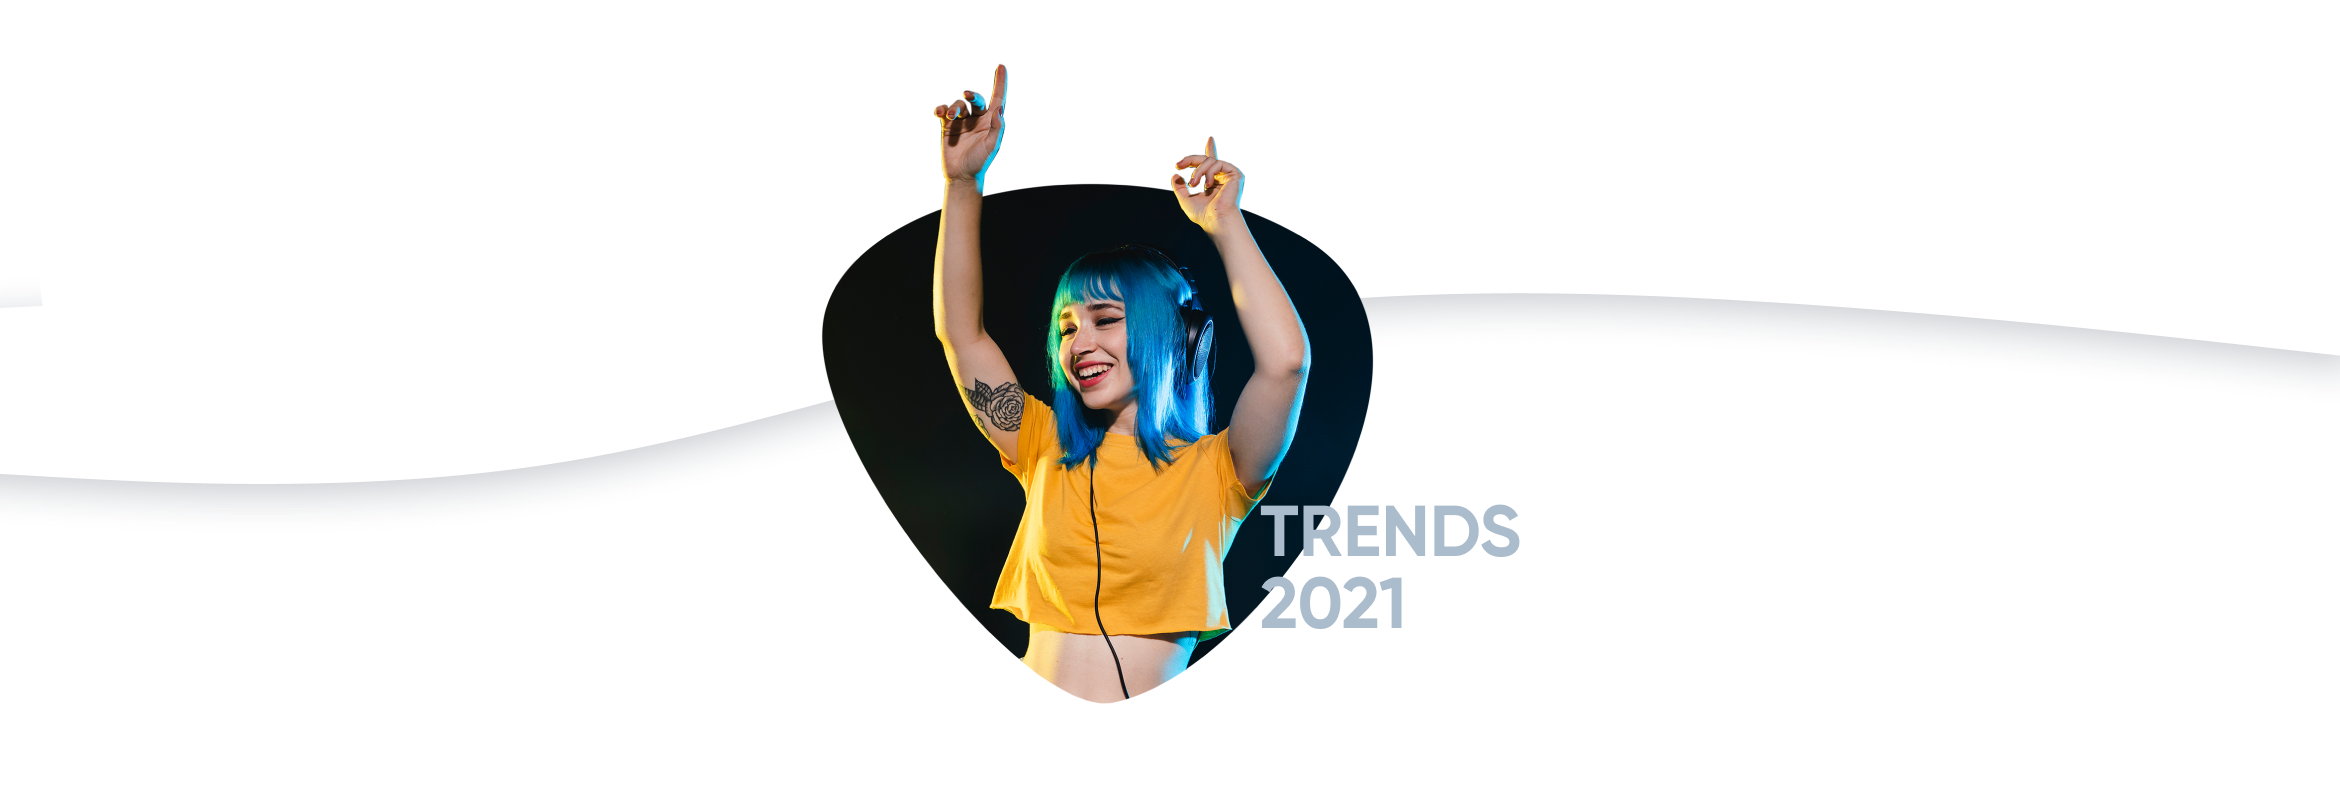 events and entertainment trends